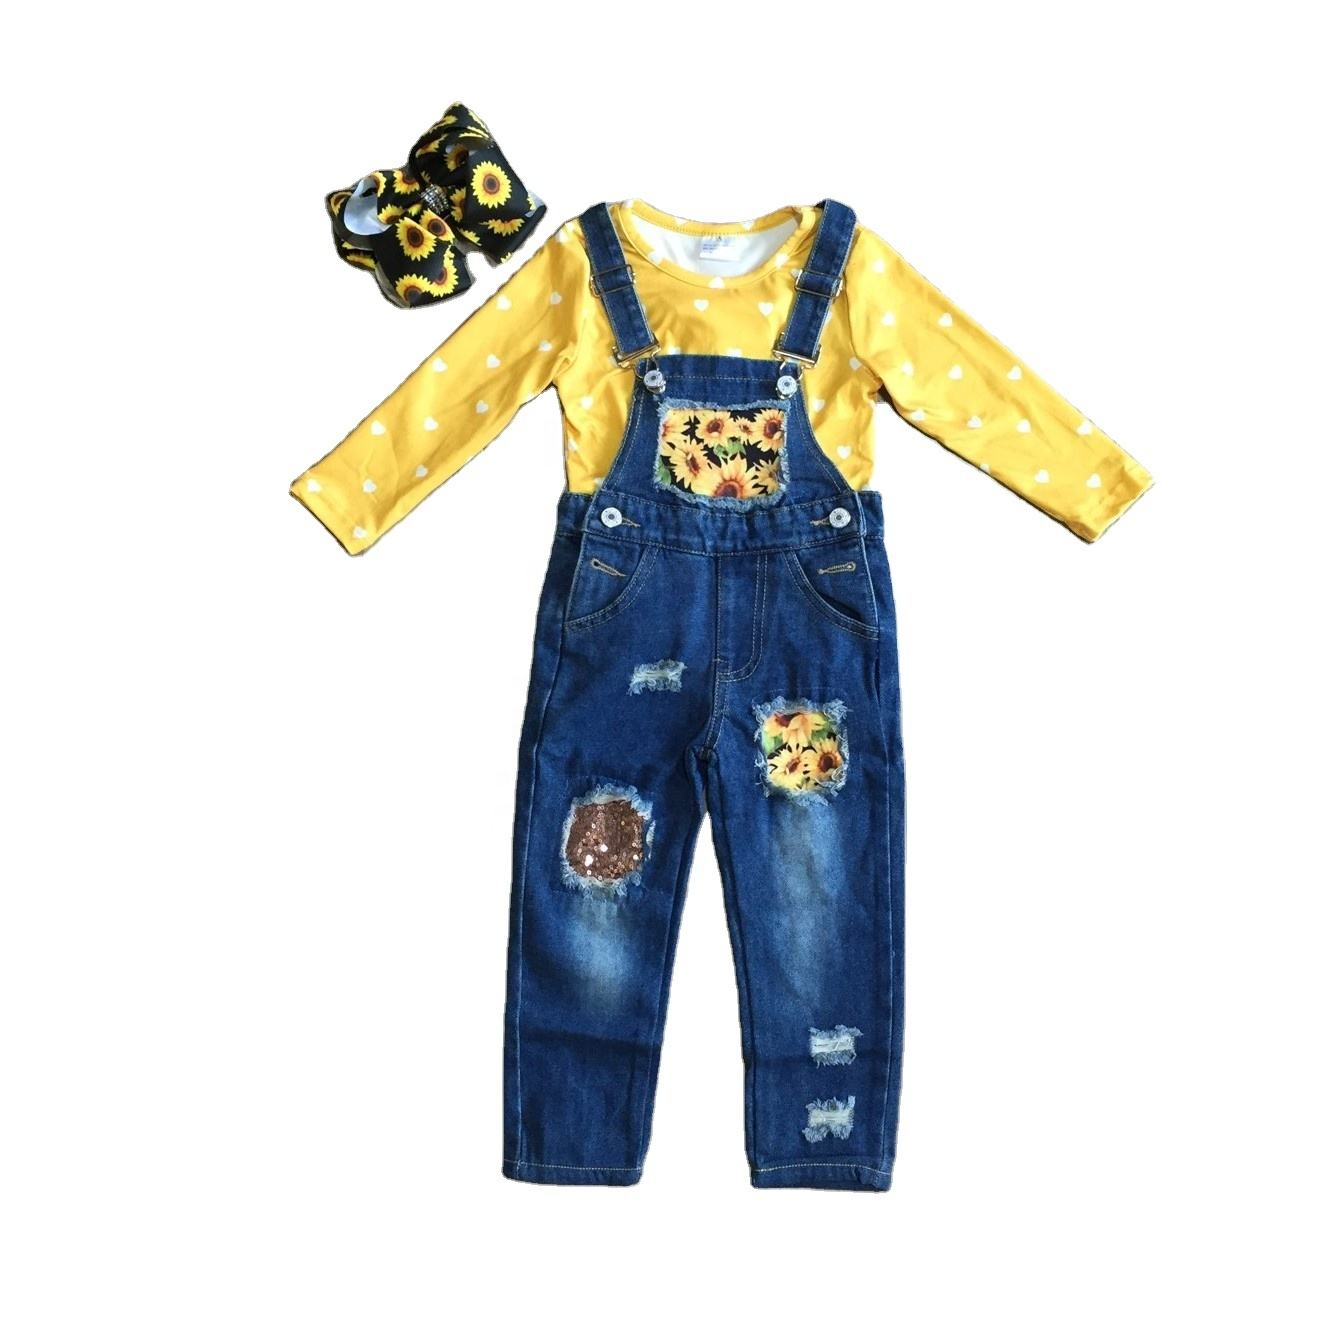 GirlyMax Winter Spring Girls Long Sleeve Yellow Top Denim Sunflower Overalls